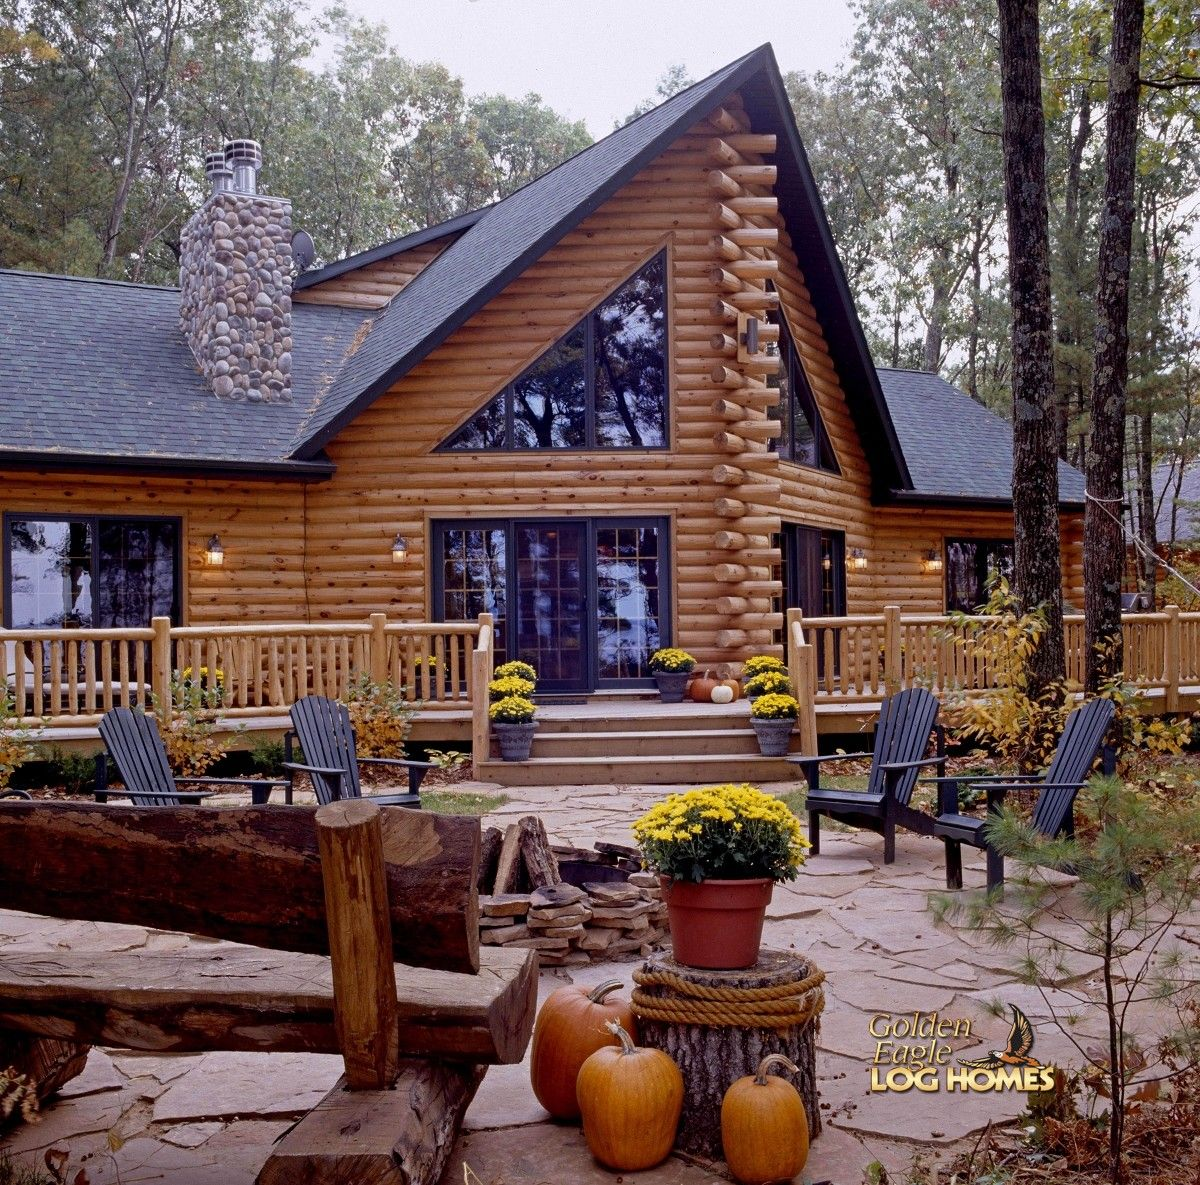 19 Log Cabin Home Décor Ideas: Log Home By Golden Eagle Log Homes